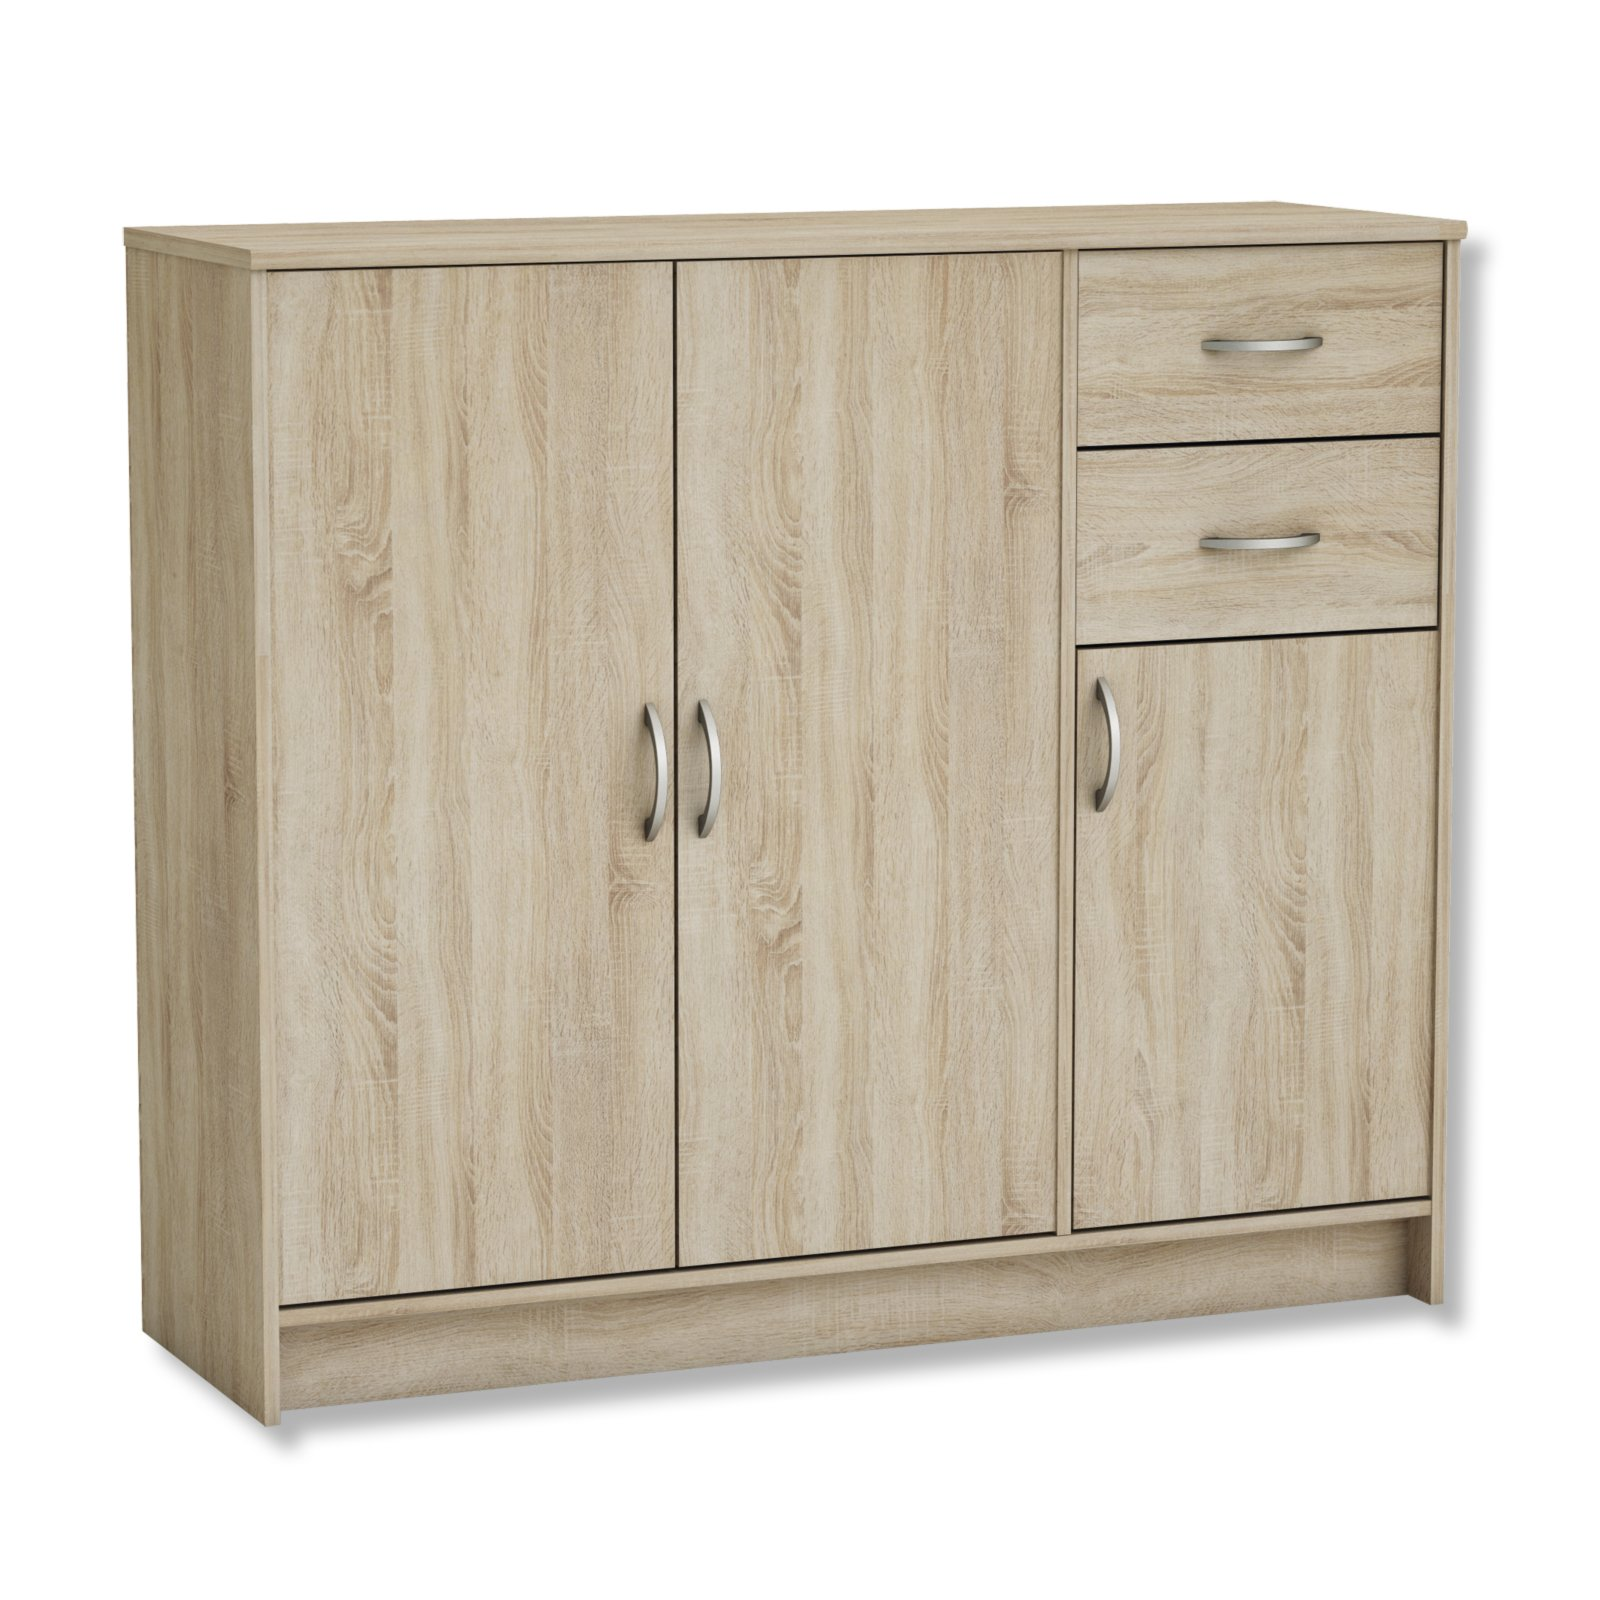 kommode sonoma eiche kommoden sideboards m bel m belhaus roller. Black Bedroom Furniture Sets. Home Design Ideas